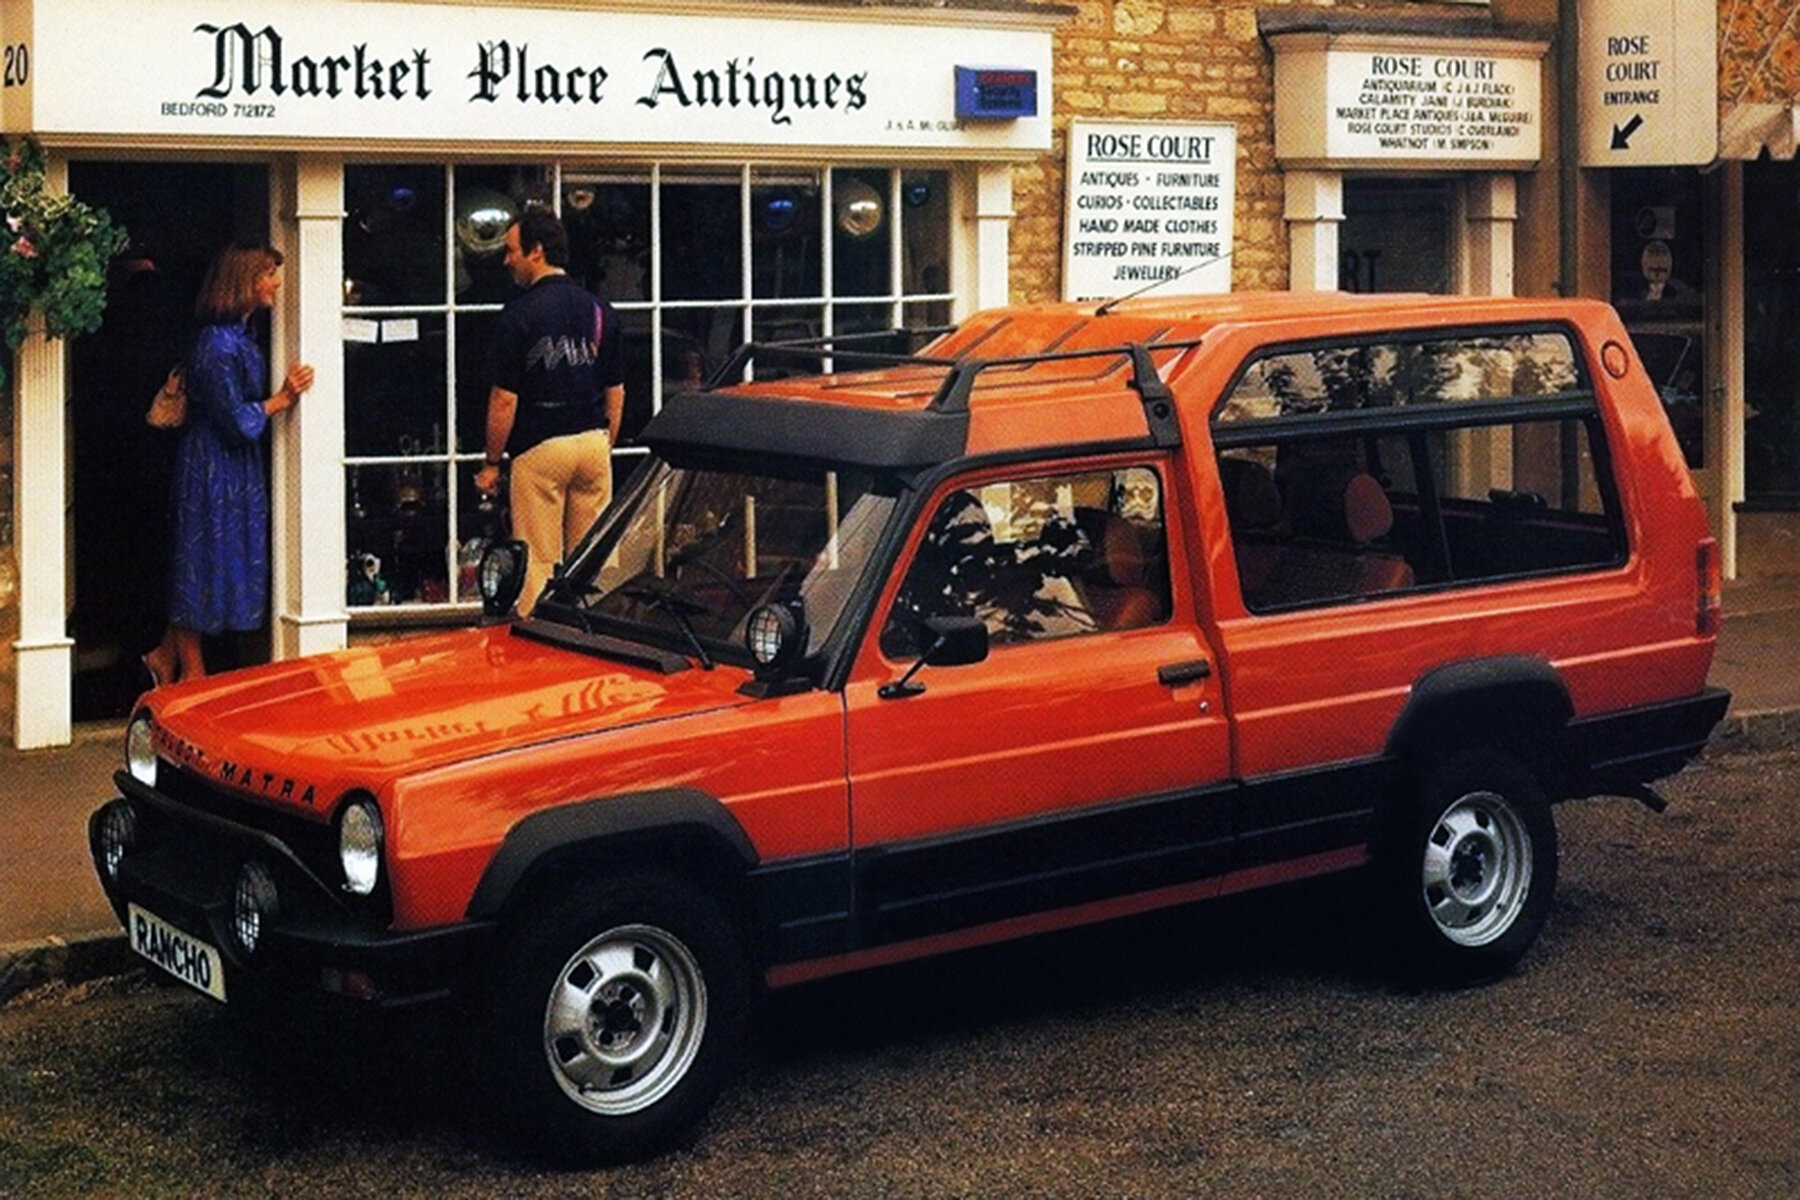 People knock the Rancho, but it sold well when new, and was seen in the smartest places